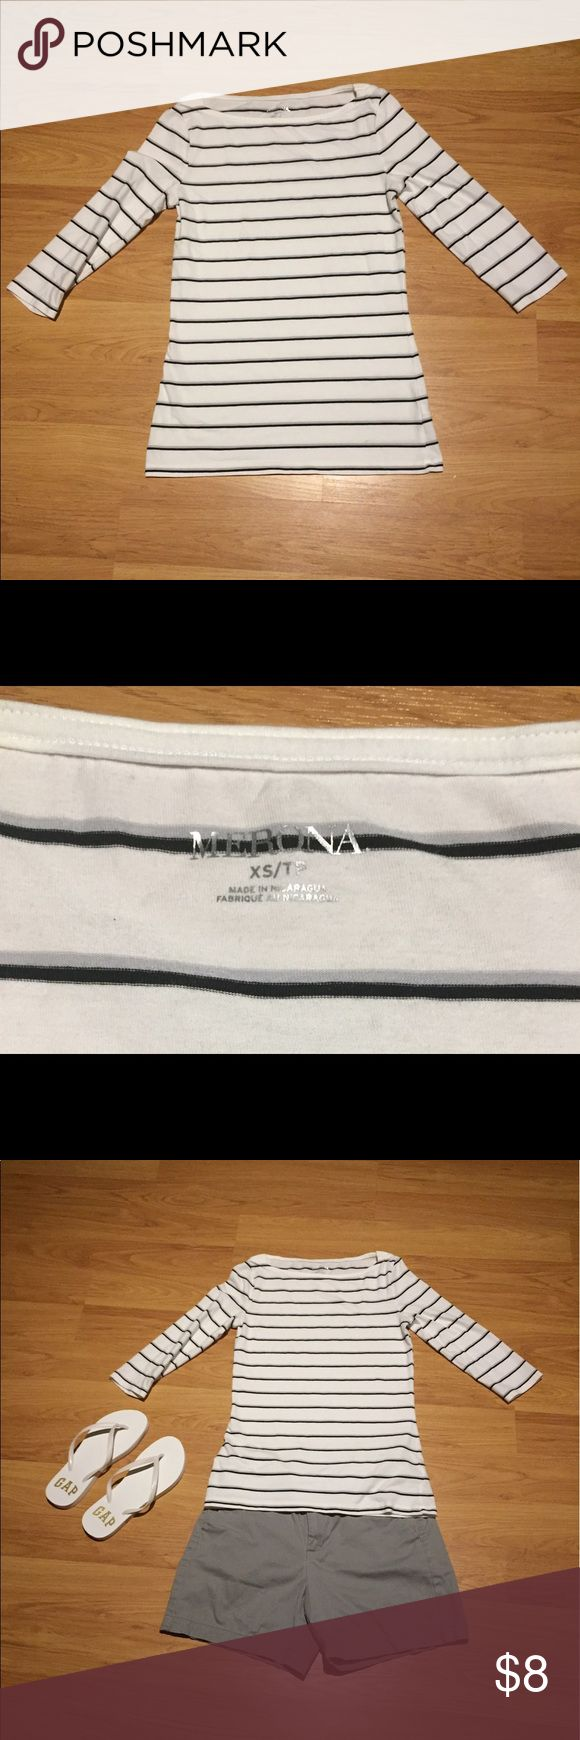 Merona boat neck top Merona boat neck top.  3/4 length sleeves.  Worn and washed once.  It is white with black and gray stripes Merona Tops